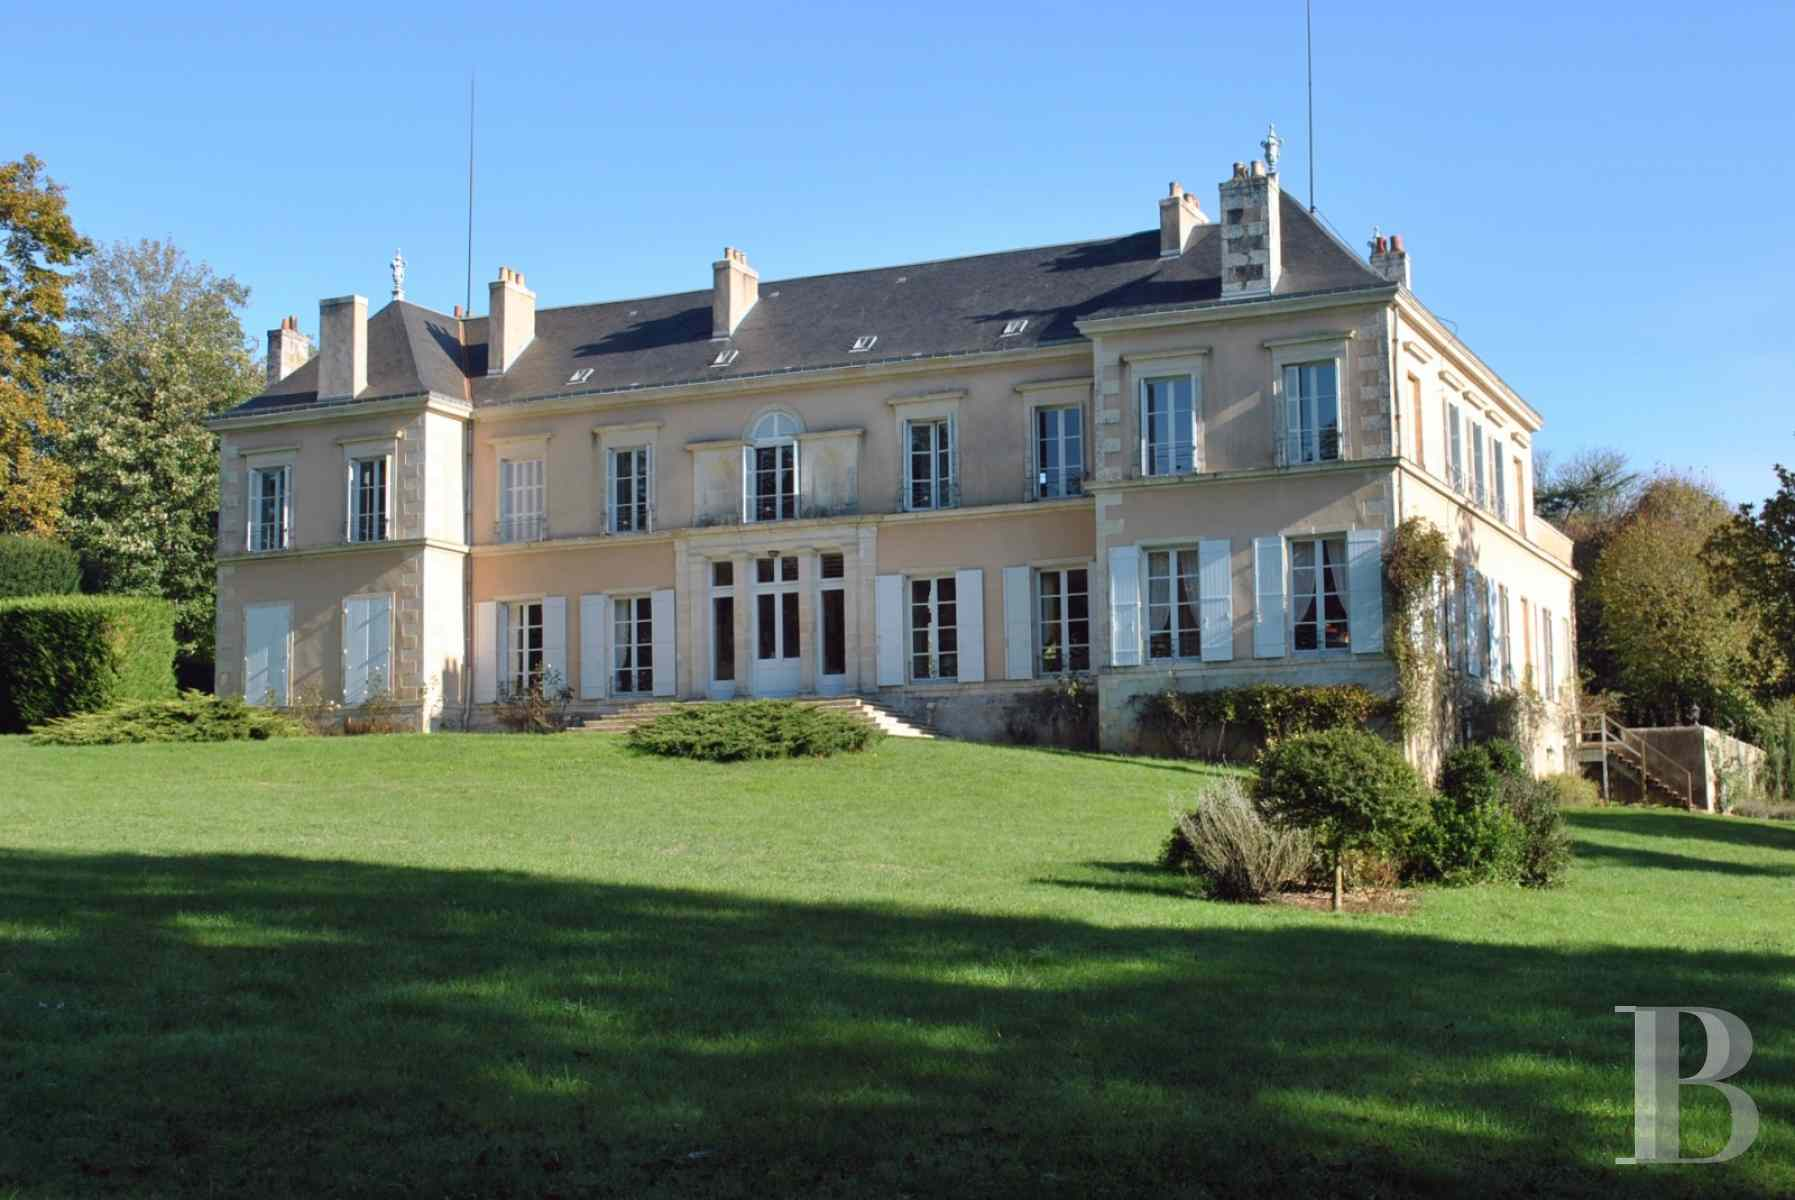 chateaux for sale France poitou charentes property outbuildings - 2 zoom